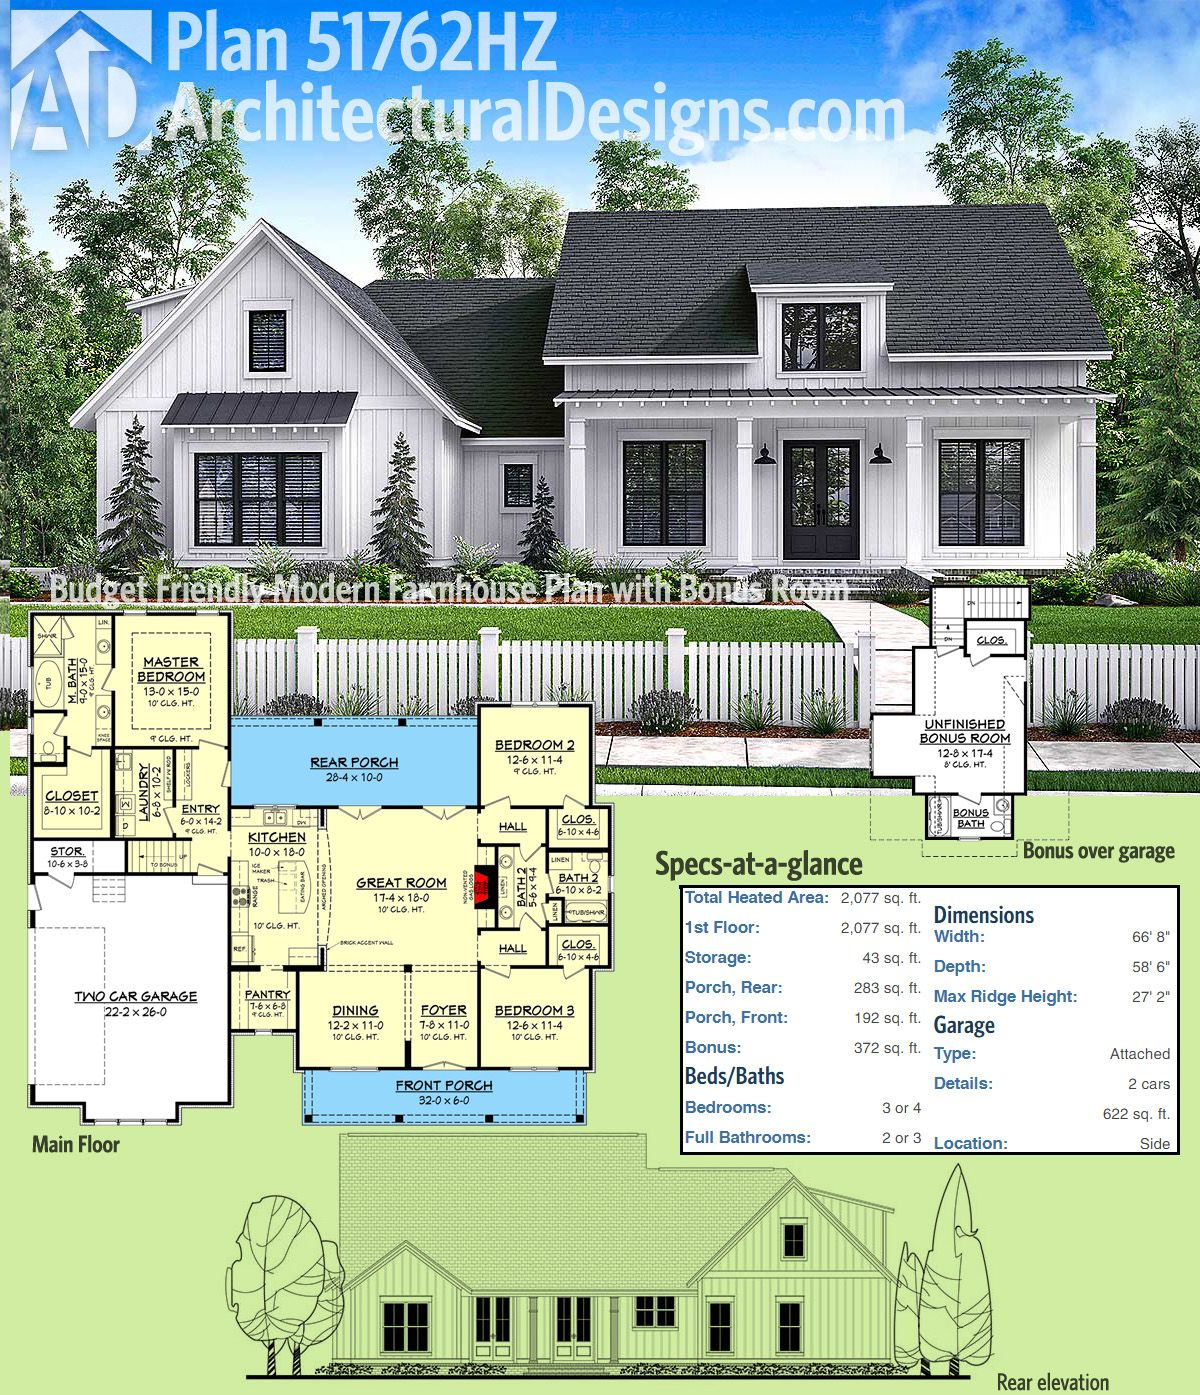 architectural designs modern farmhouse plan 51762hz gives you just over 2000 square feet of heated living - Small Modern House Plans Under 2000 Sq Ft